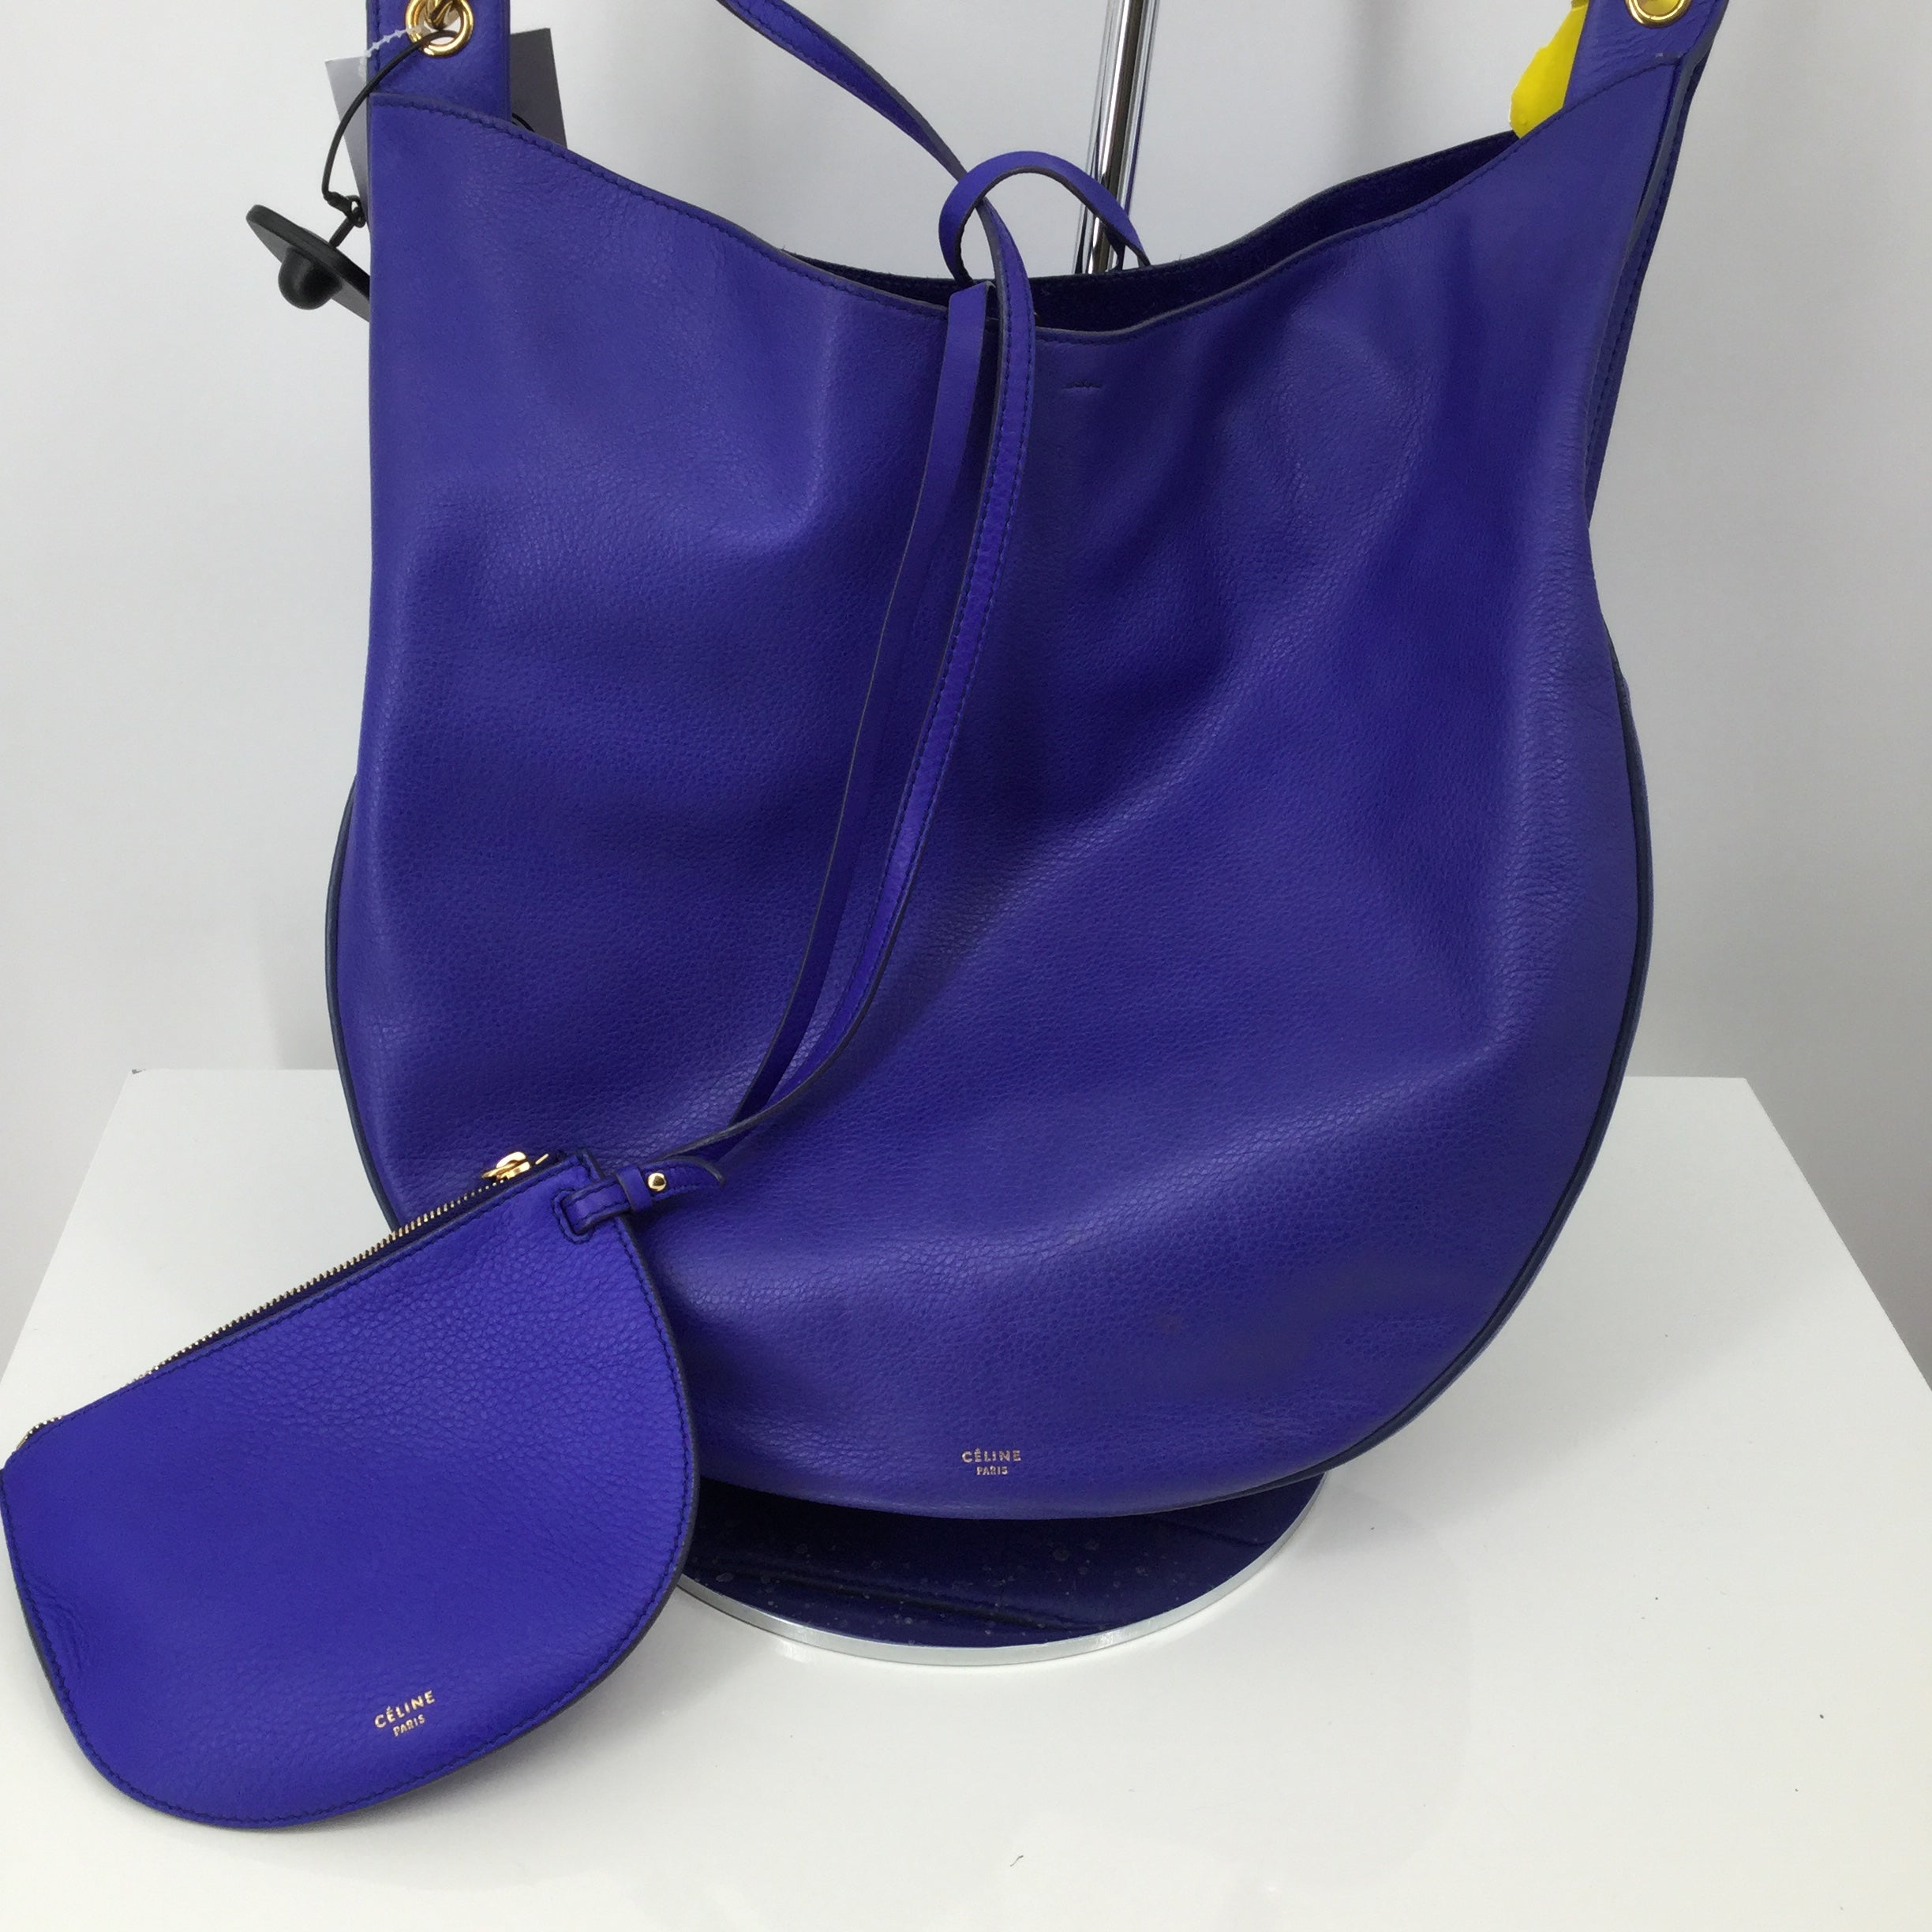 Primary Photo - BRAND: CELINE , STYLE: HANDBAG , COLOR: PERIWINKLE , SIZE: LARGE , OTHER INFO: AS IS , SKU: 127-2767-92180, , SUPPLE CALFSKIN LARGE HOBO INDIGO W/ SLEEPER BAG AND REMOVABLE POUCH TO BE USED AS A WALLET!⁣⁣ , LONGEST LENGTH : 14.5 IN⁣⁣, WIDTH: 2.75 IN⁣⁣, HEIGHT: 13.5 IN⁣⁣, DROP: 11 IN⁣⁣, 𝐒𝐭𝐲𝐥𝐞/𝐈𝐃#: U GM 0124⁣⁣, YEAR: 2014